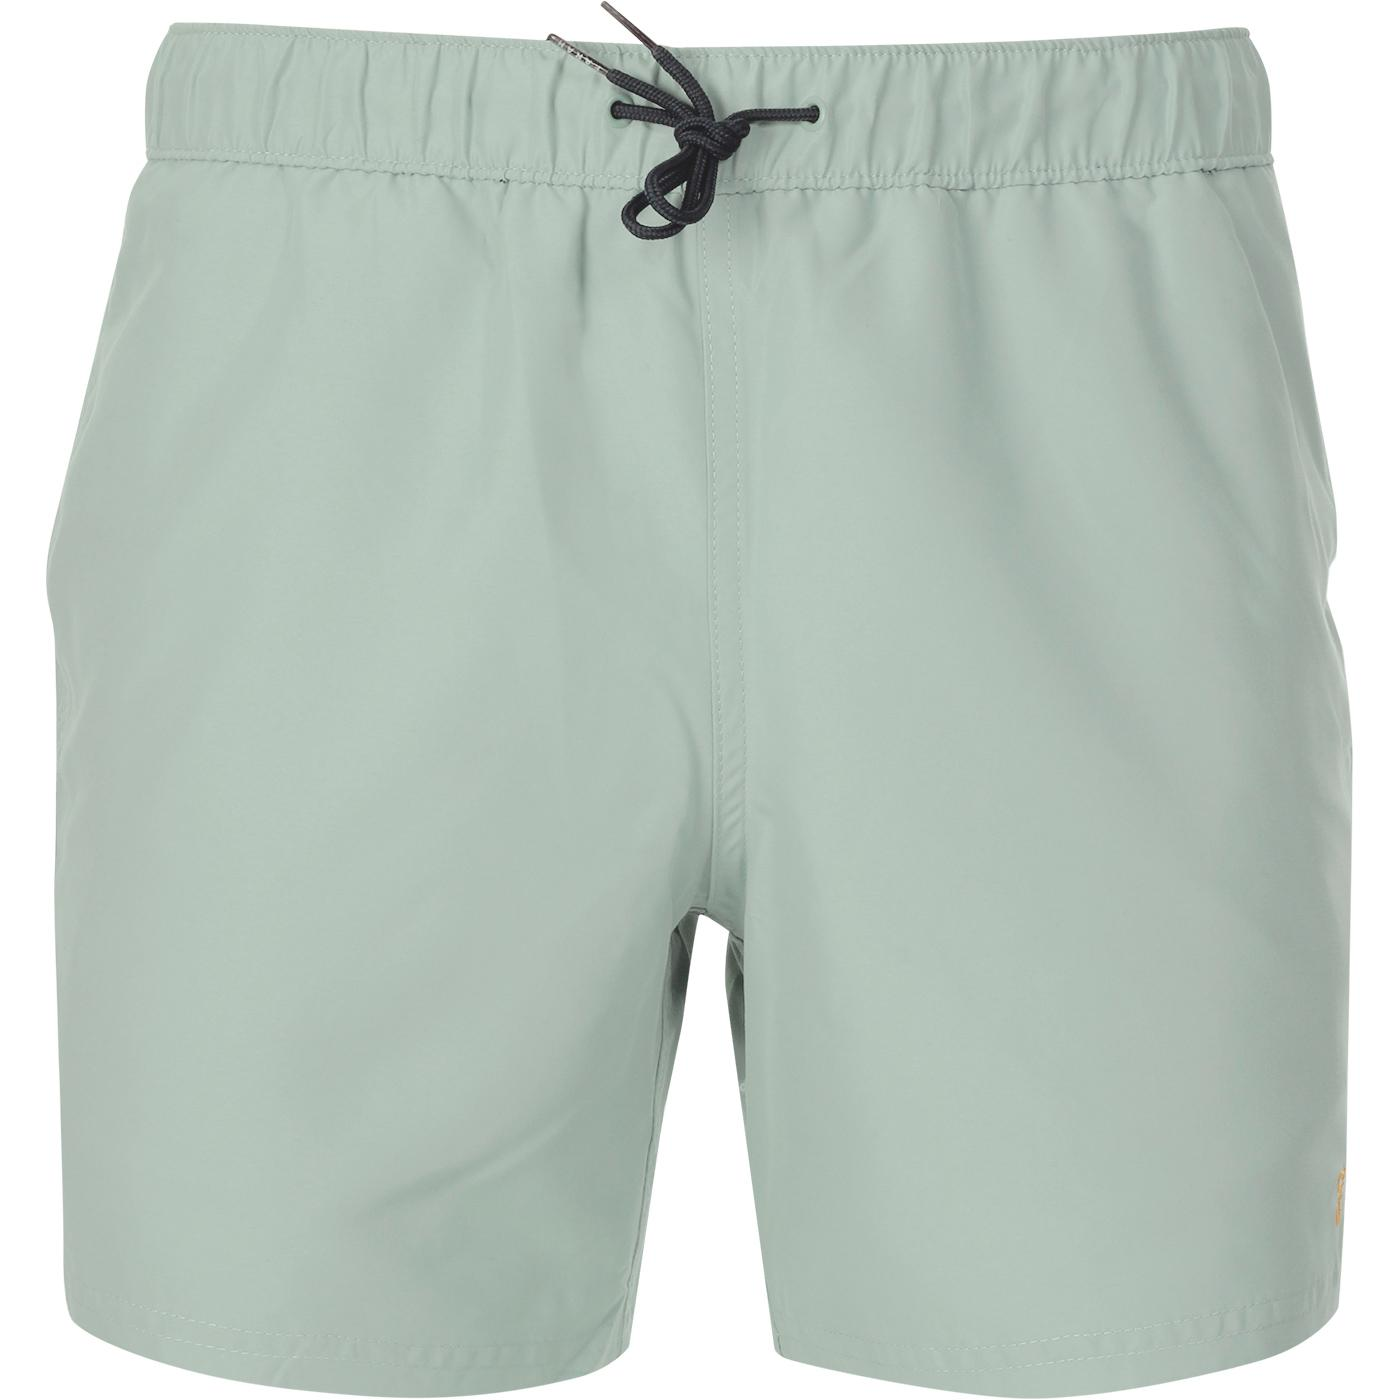 Colbert FARAH Men's Retro Swim Shorts (Green Mist)